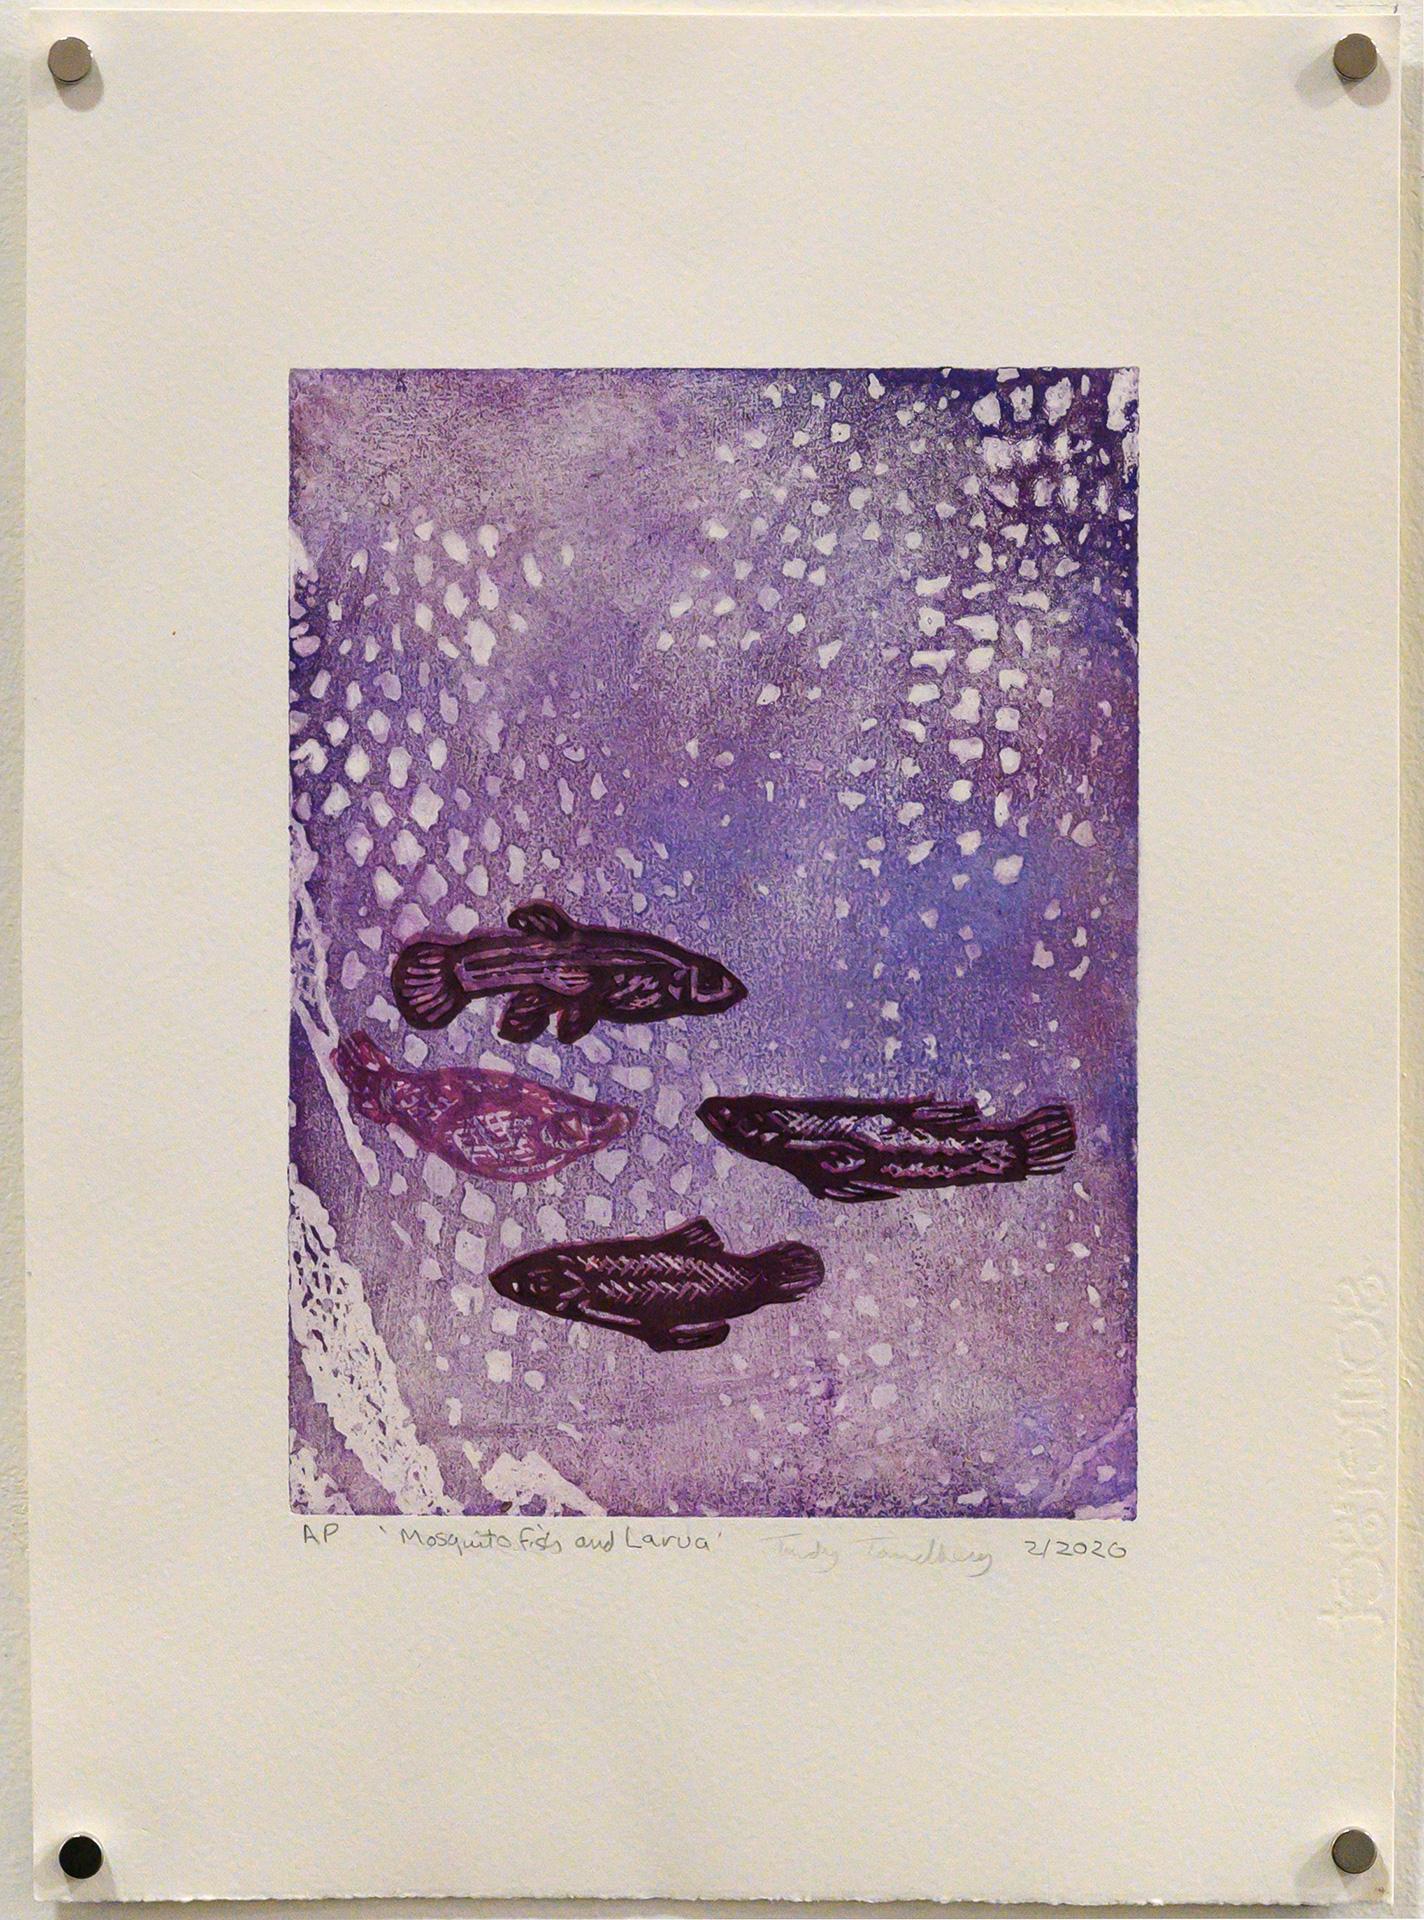 Unframed artwork by Trudy Tandberg of 4 small fish underwater with purple background